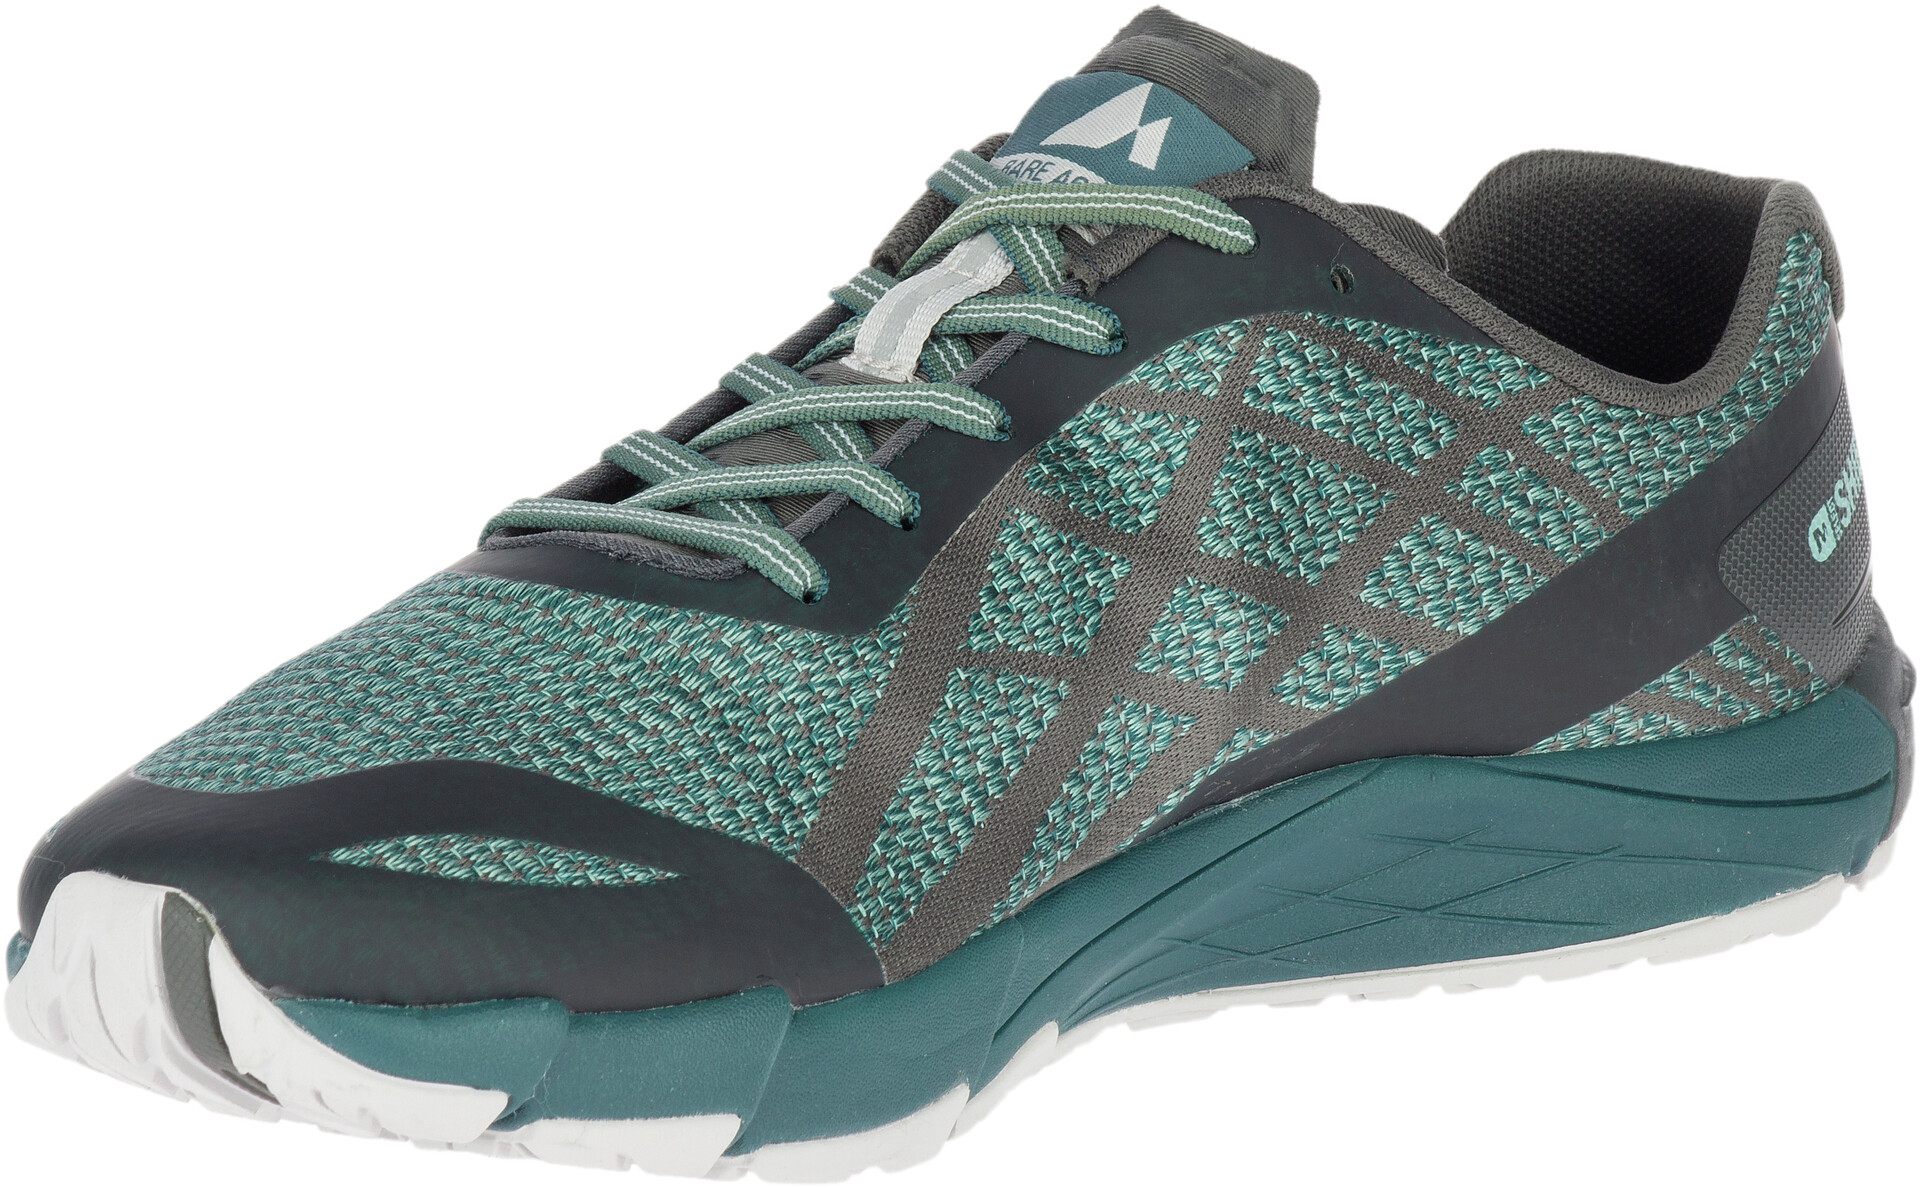 Merrell Bare Access Flex Shield Chaussures Homme, hypernature